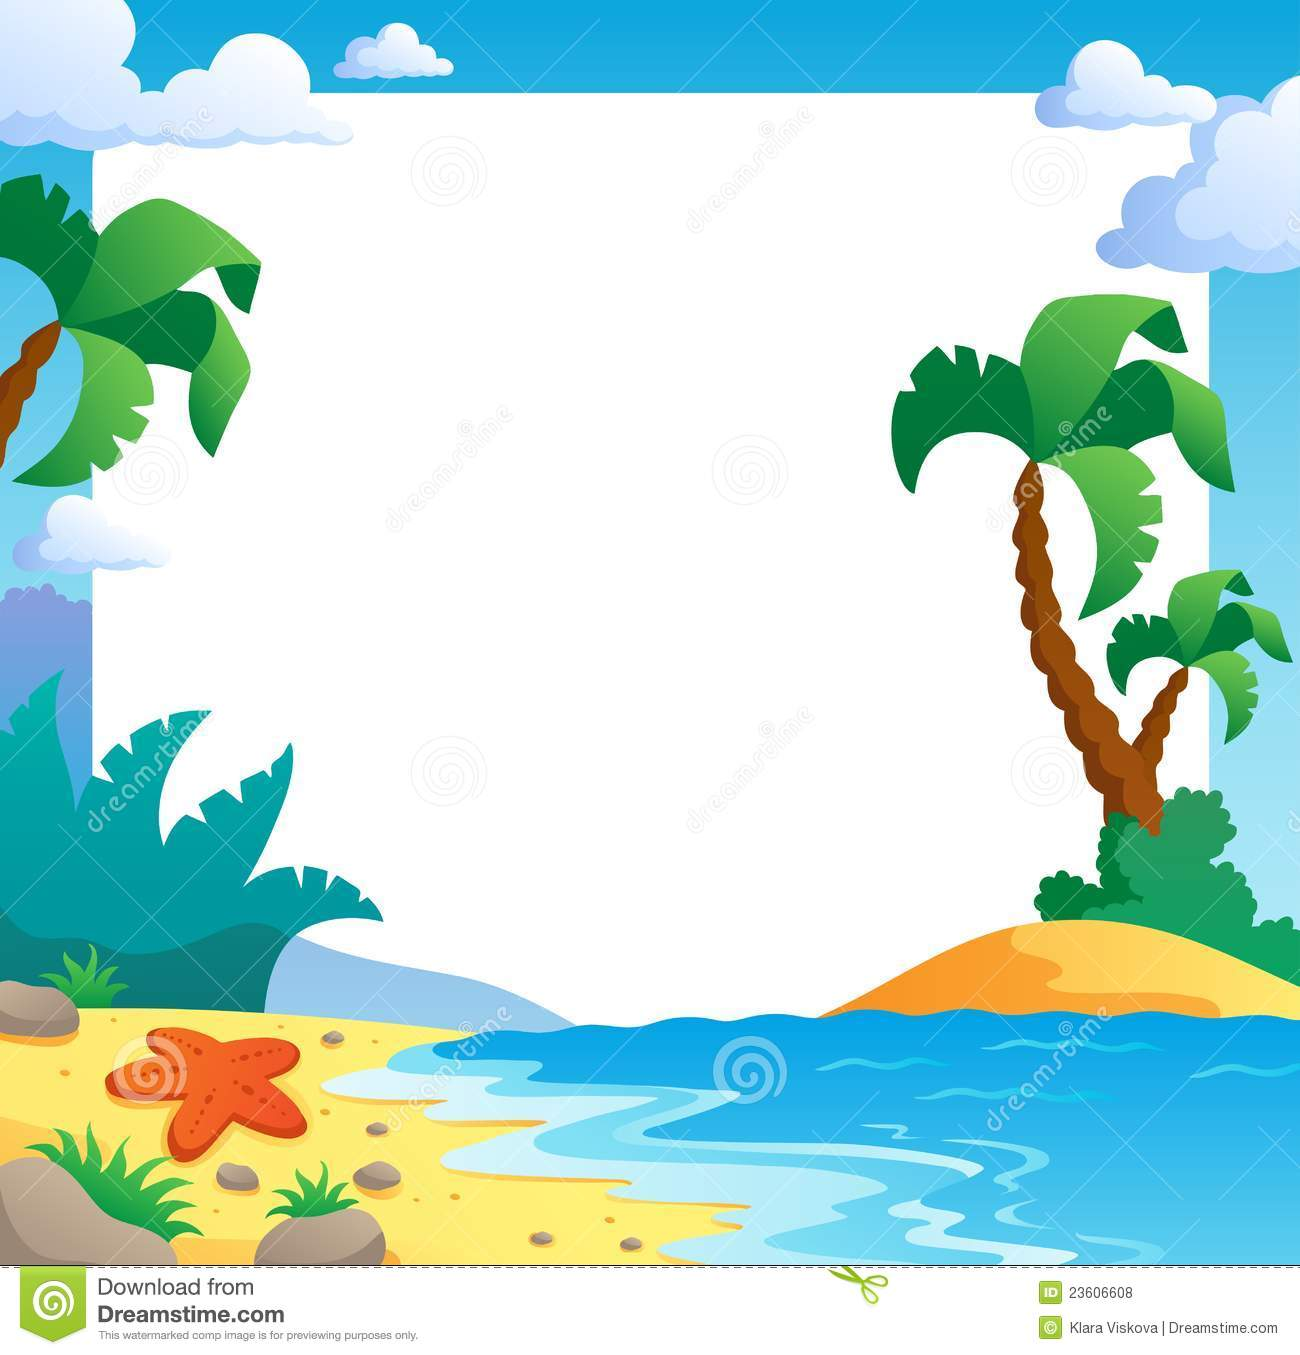 Beach themed clipart free graphic freeuse download Beach Clipart Borders | Free download best Beach Clipart Borders on ... graphic freeuse download